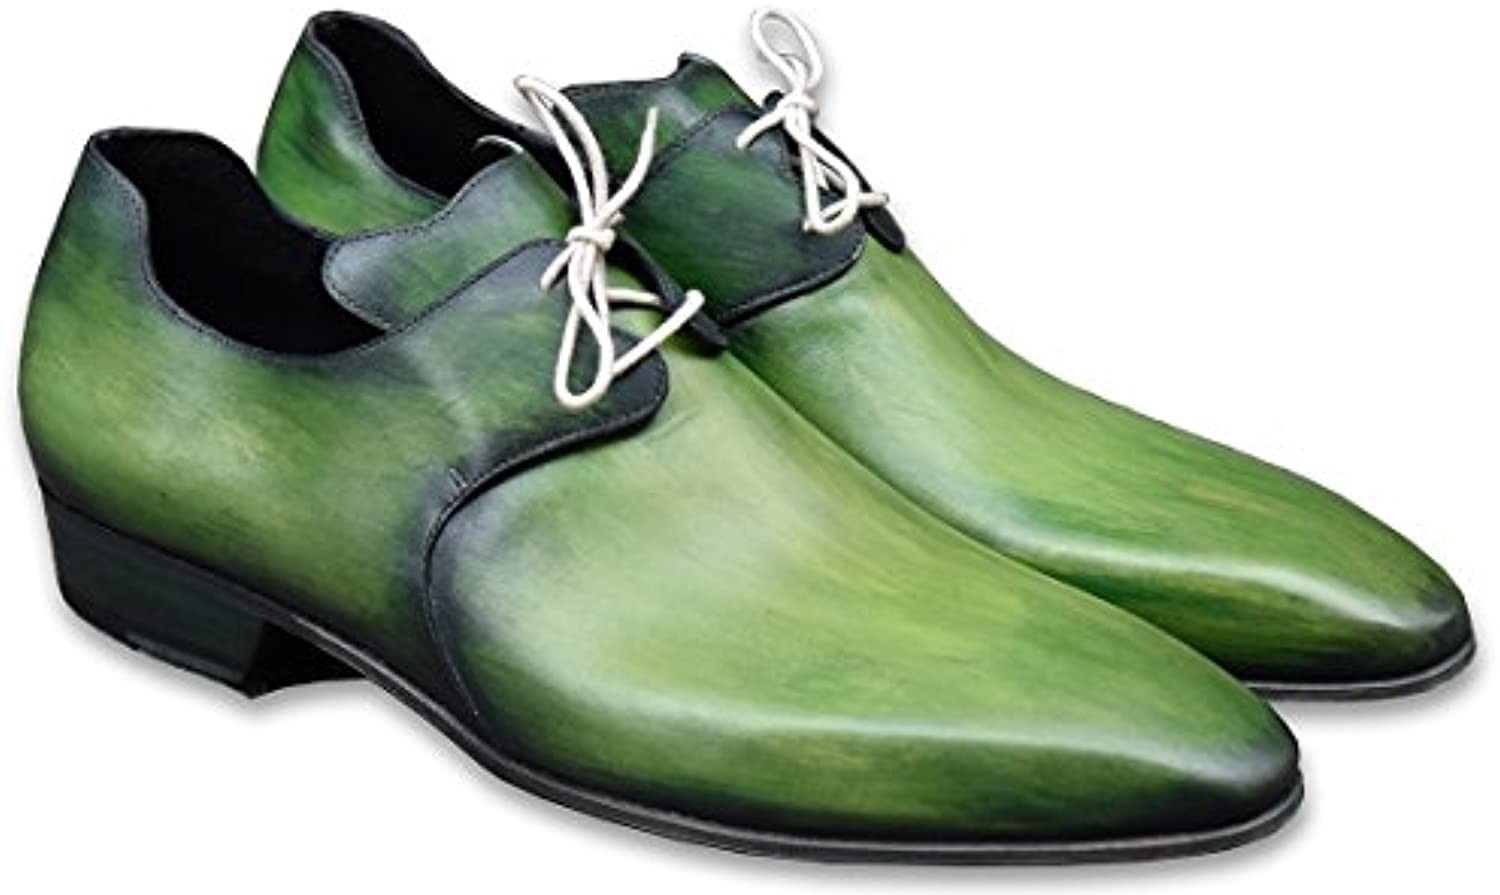 Paulus Bolten Patent Leather Shoes Color Japanese Japanese Japanese Green, Bach Collection, Size 40,41,42,43,44,45 (43) 33e957